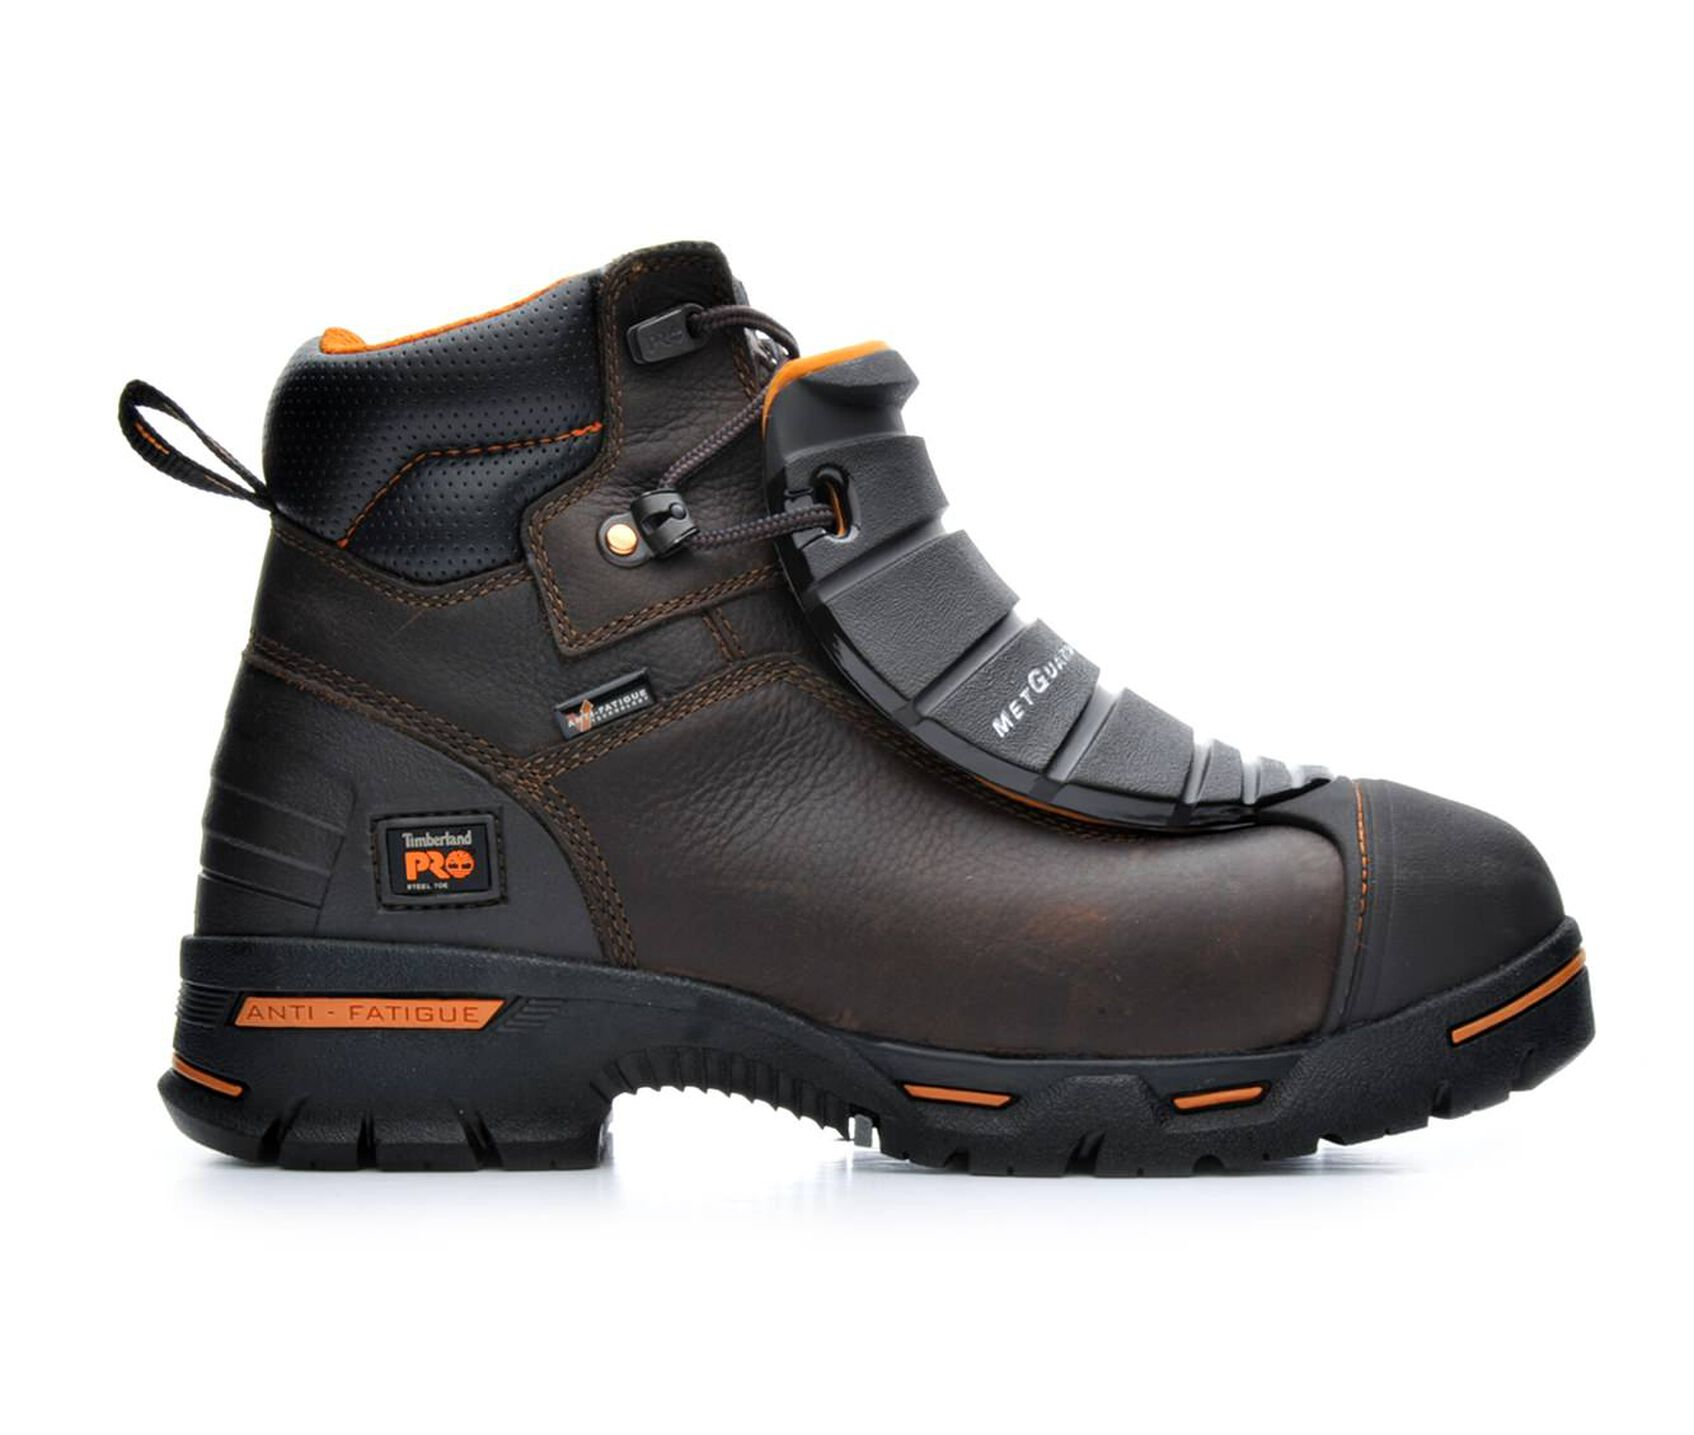 96260742aa6 Men's Timberland Pro A172T Endurance Steel Toe Met Guard Work Boots